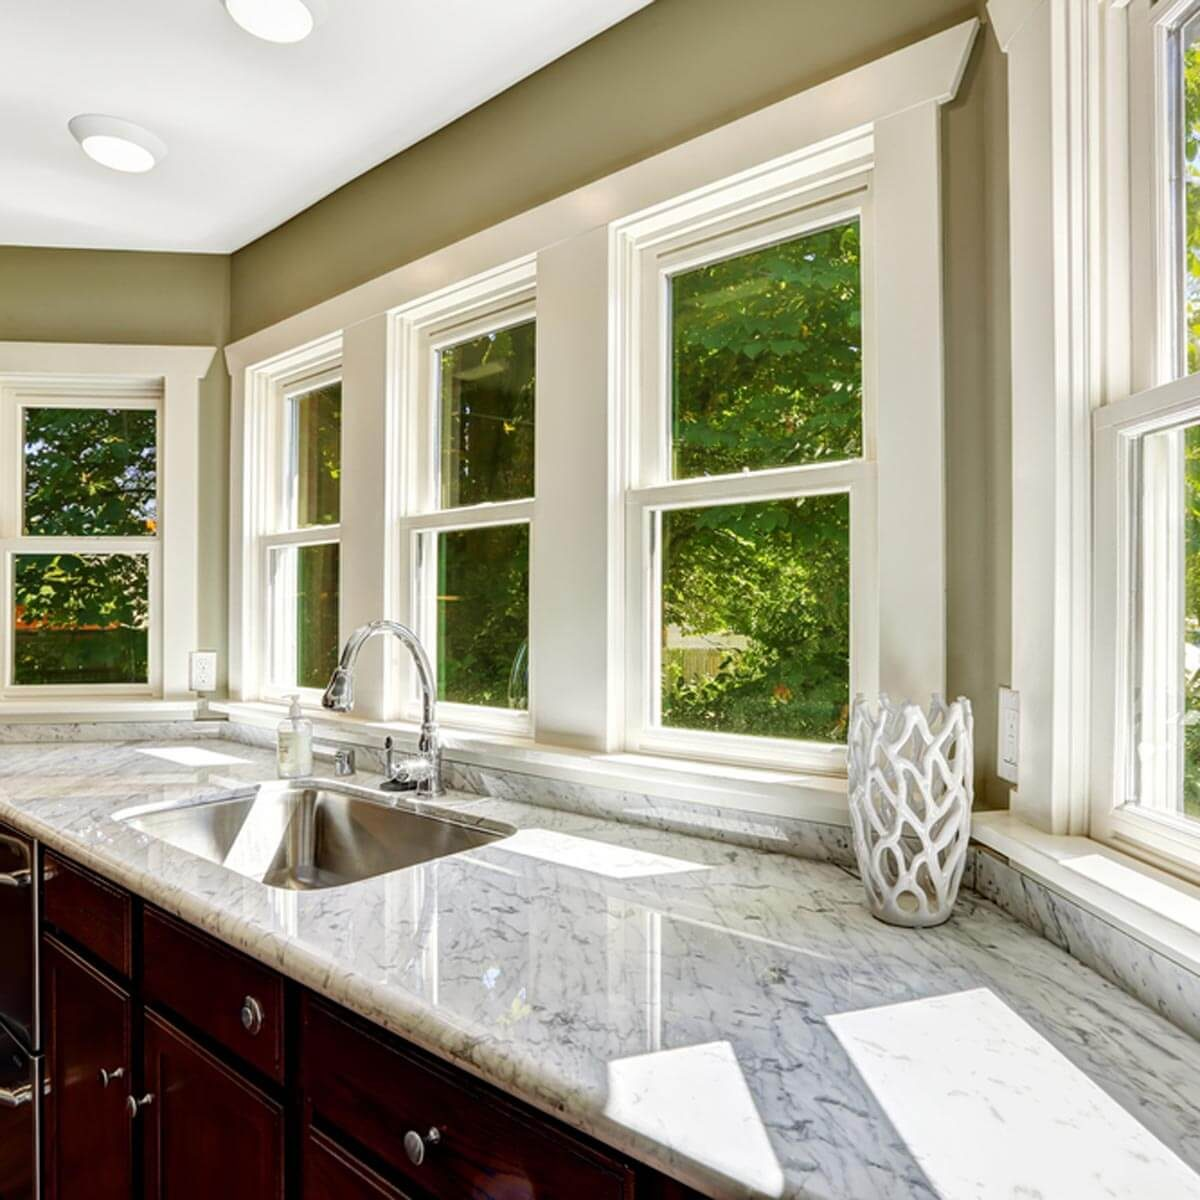 Marble Durable Countertops